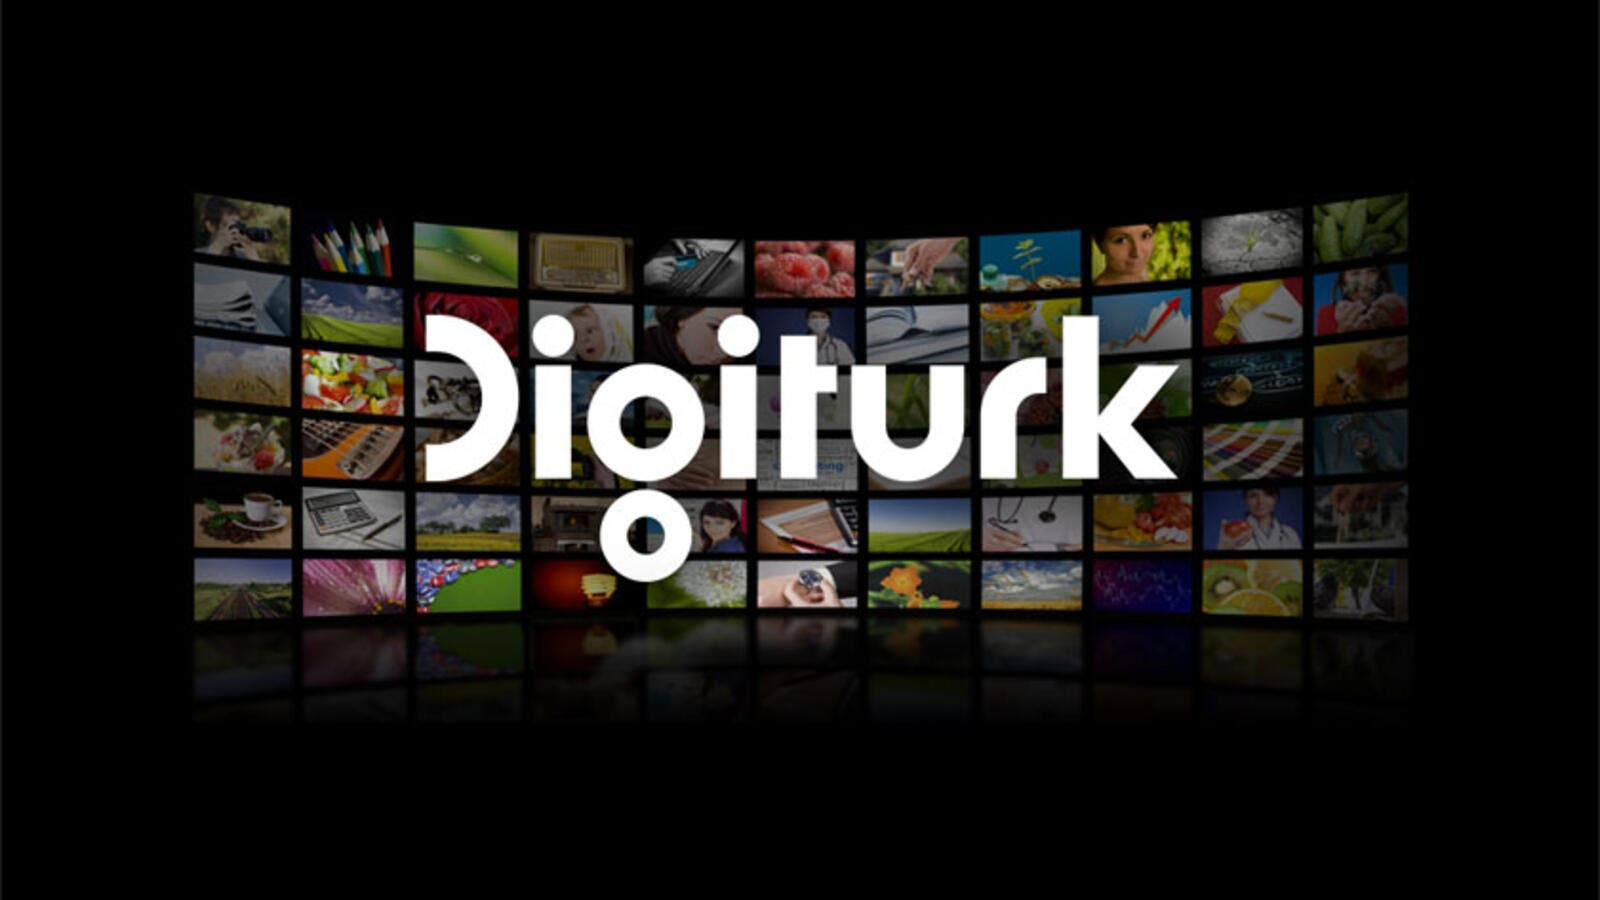 The acquisition of Digiturk represents the largest deal in BeIN's history and a major milestone in their global expansion. (File photo)